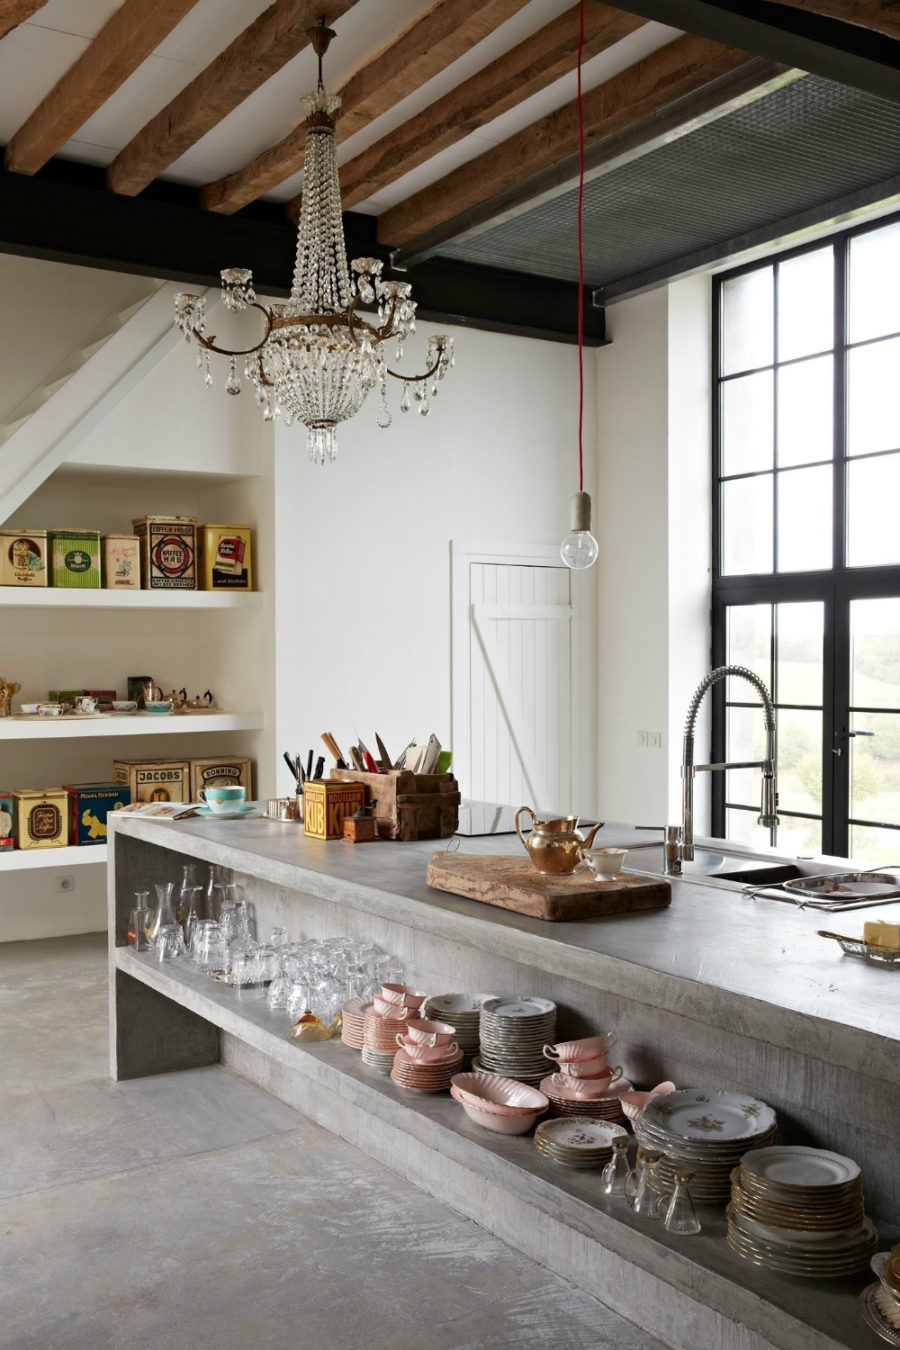 Concrete kitchen island and floors